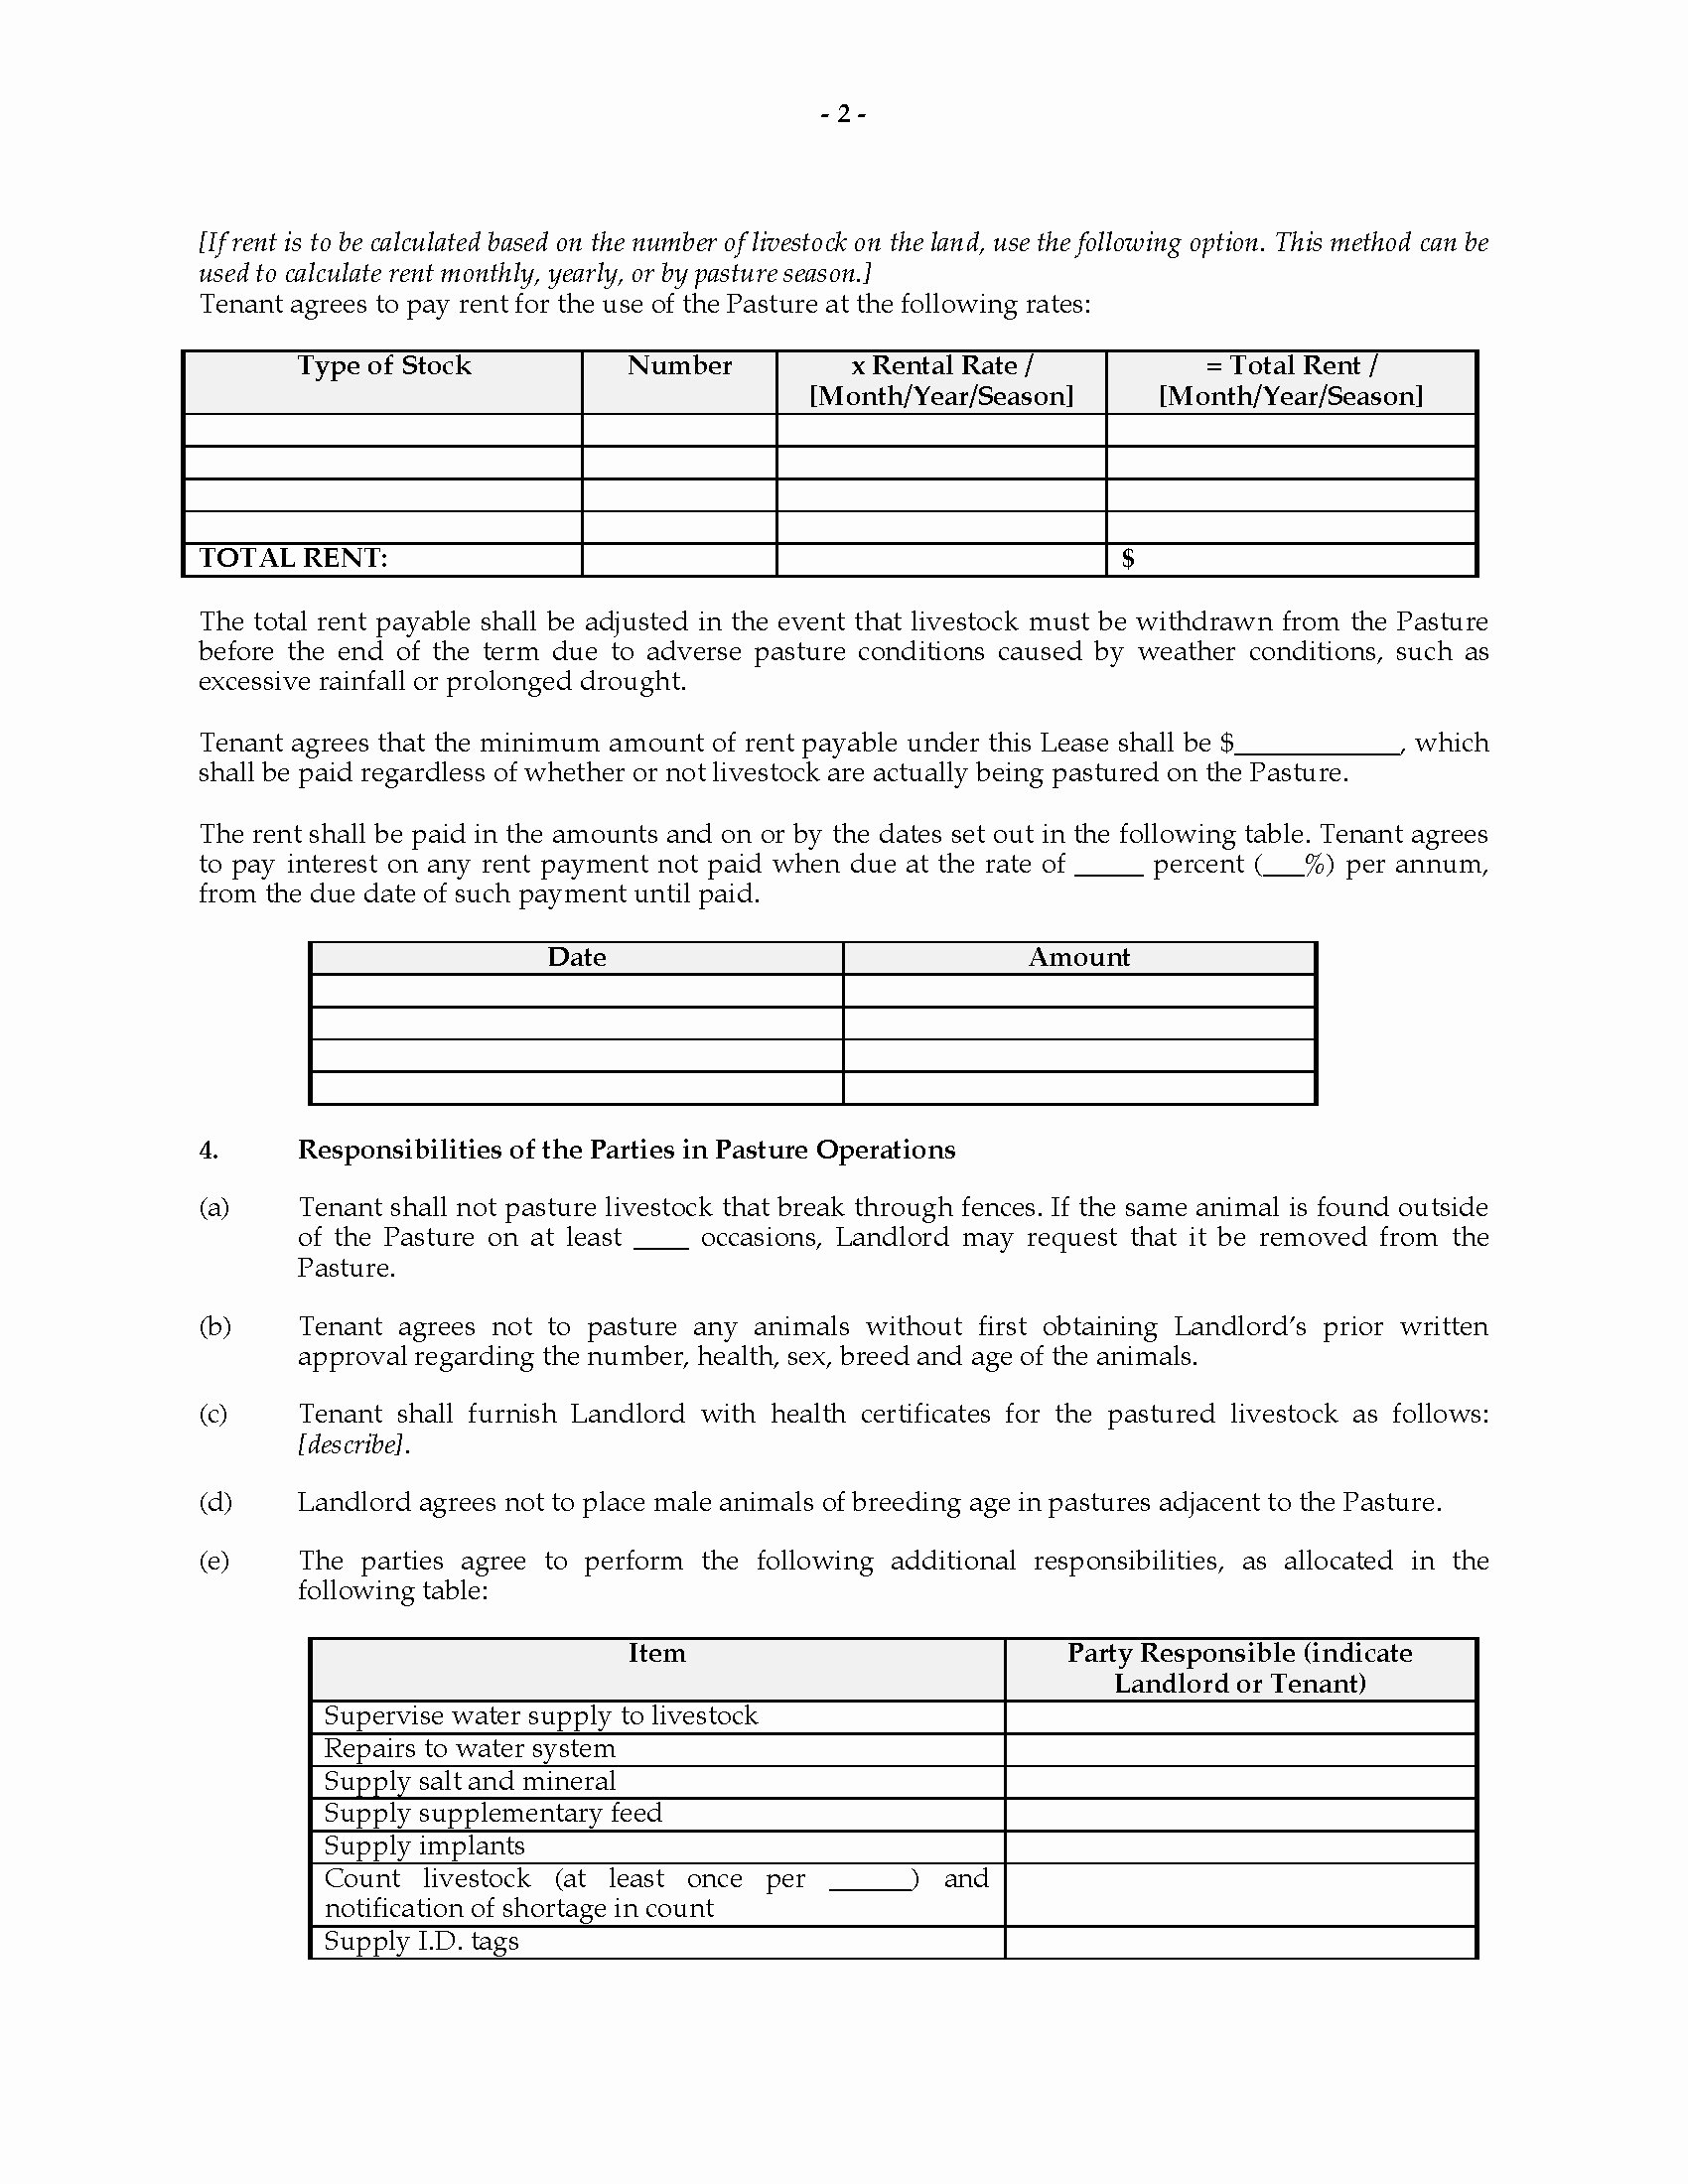 Texas Grazing Lease Agreement Template Fresh Tario Pasture Lease